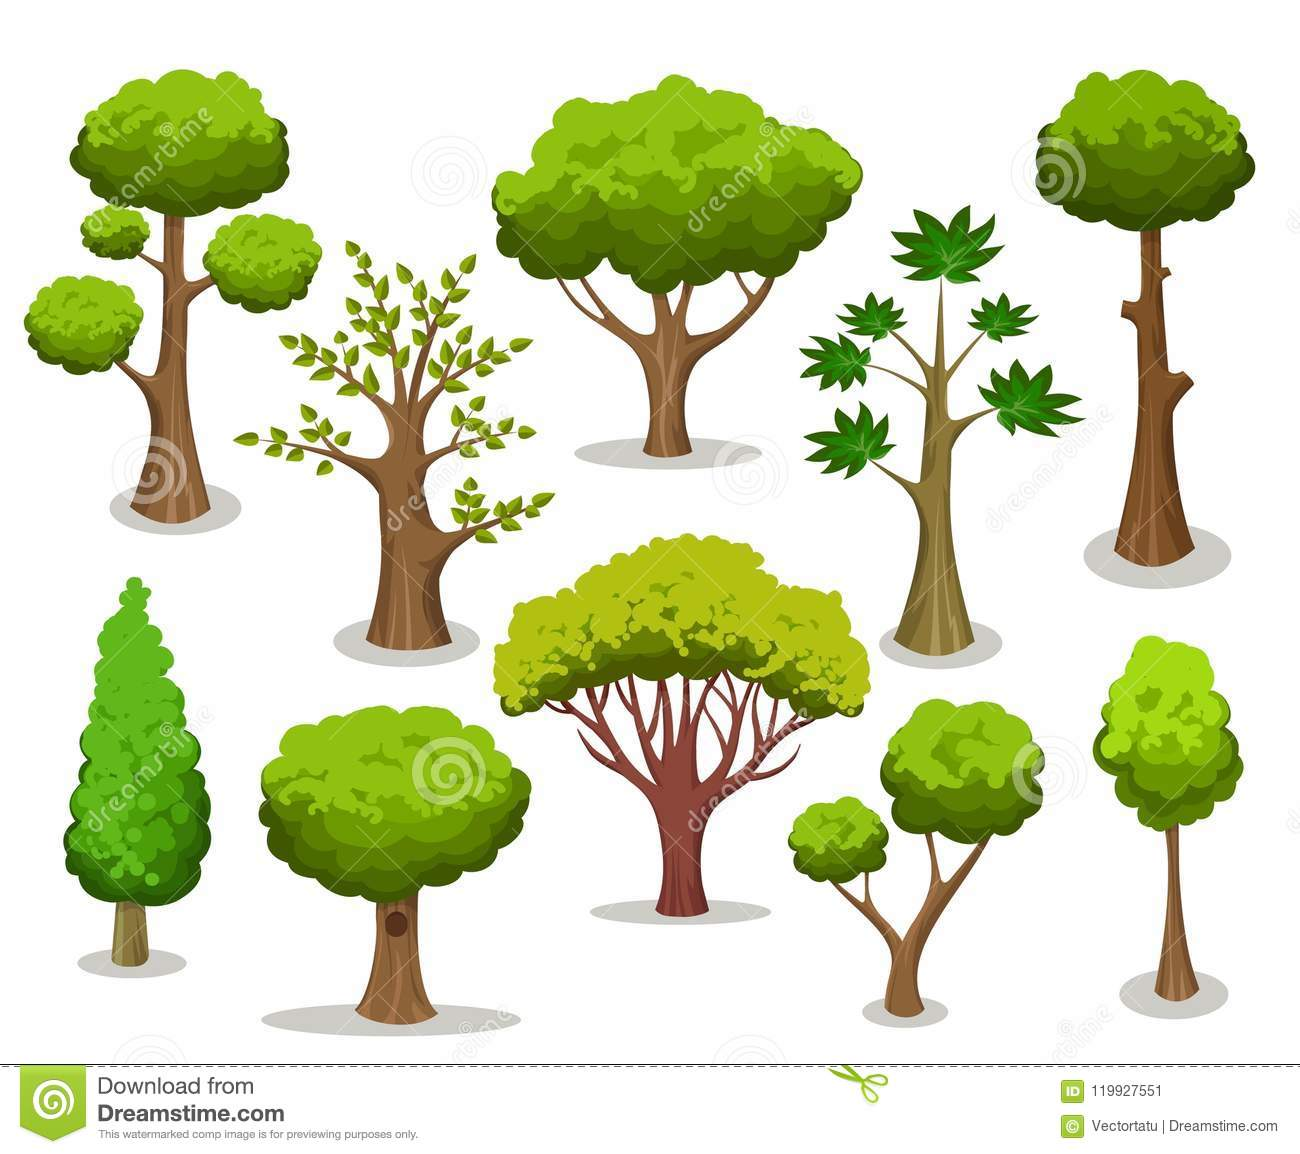 Cartoon tree collection stock vector. Illustration of garden.